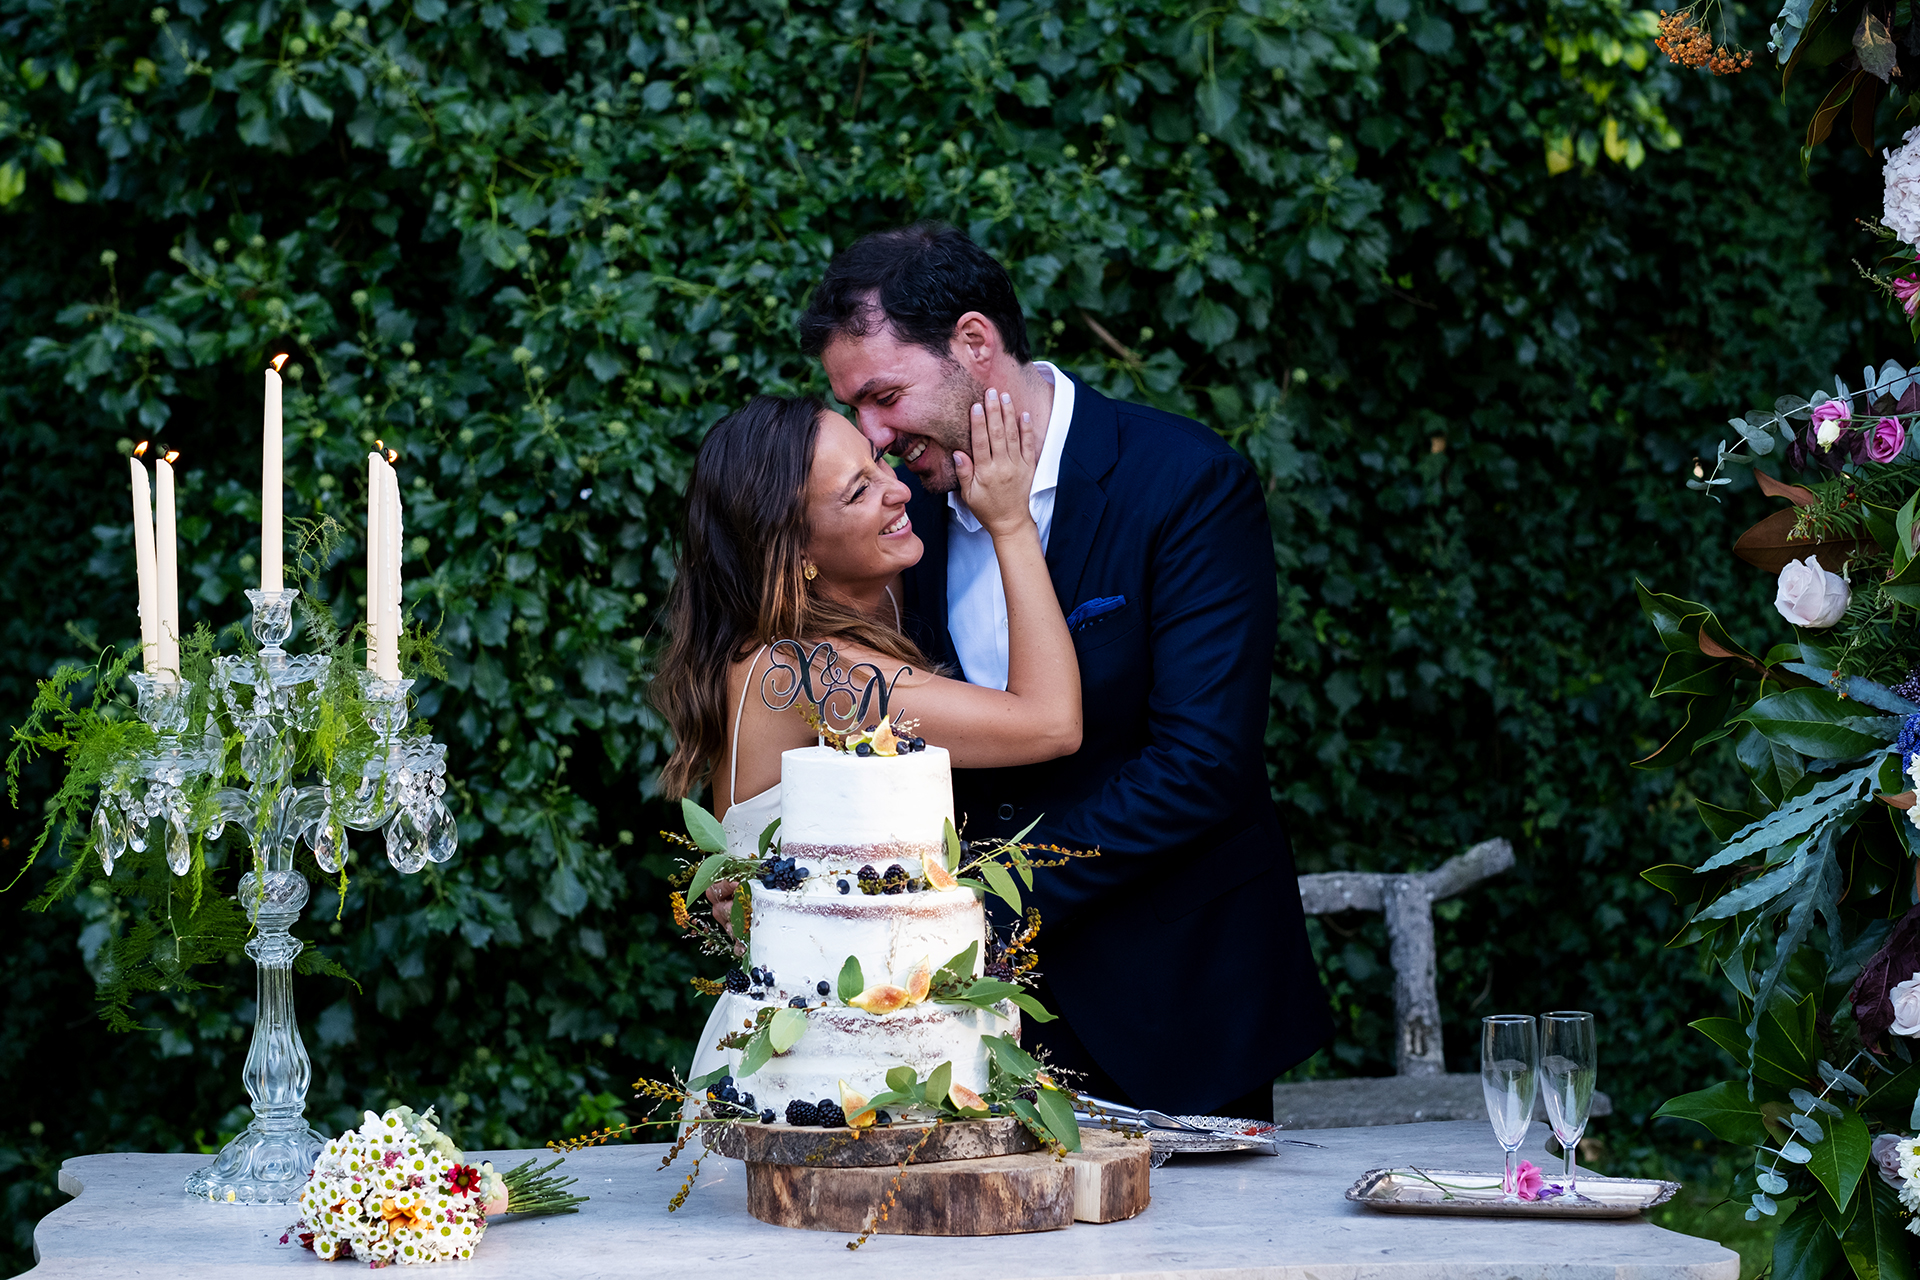 Portugal Backyard Wedding Pictures | The organic beauty of the yard highlights the natural love